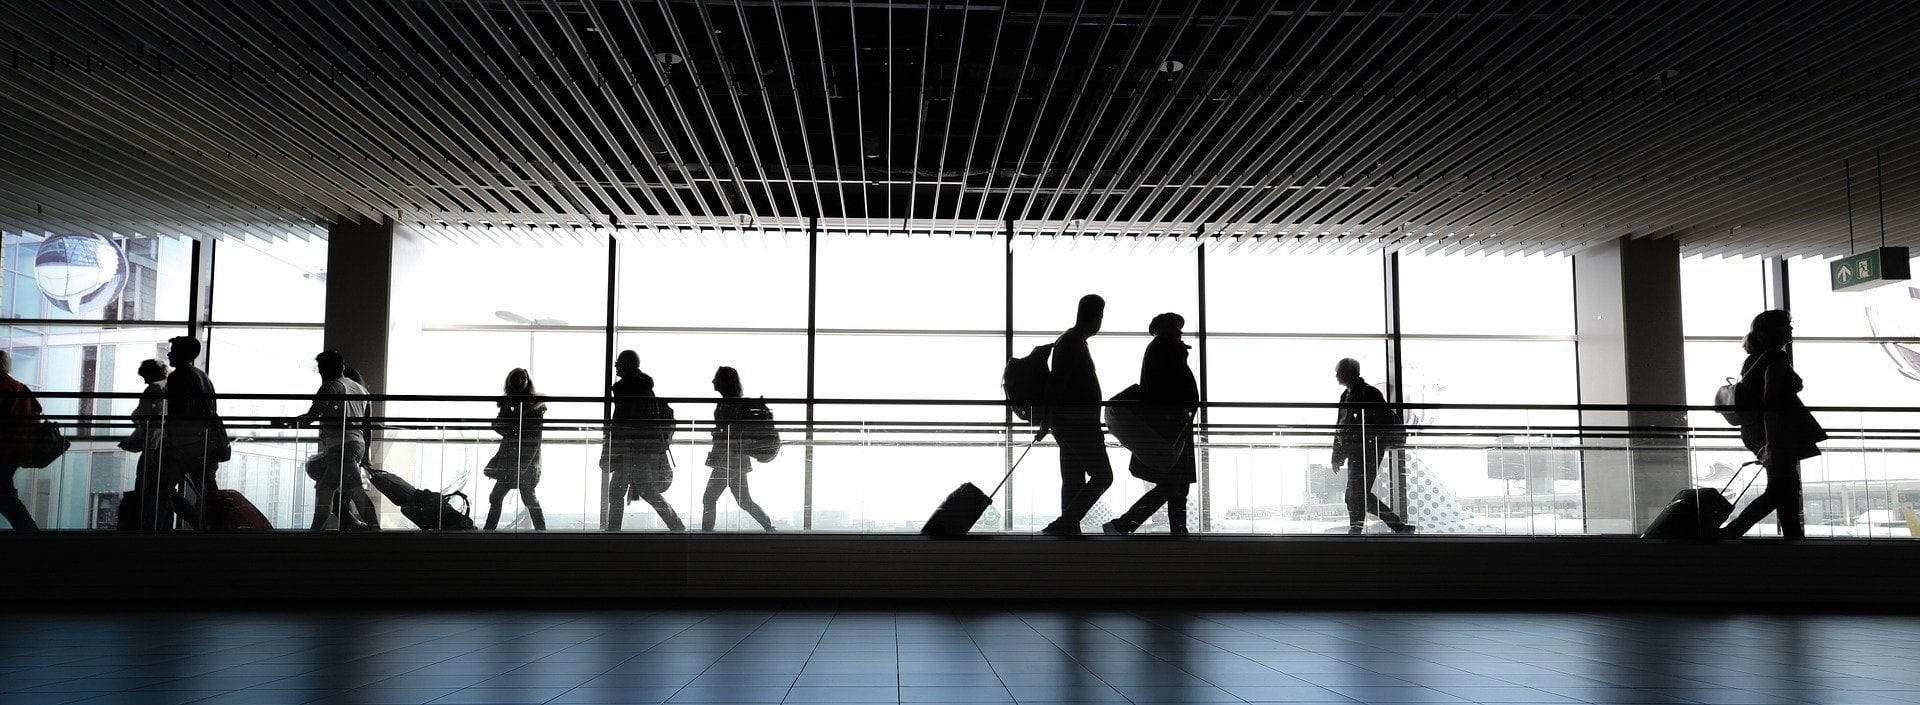 ACI Is Hosting A Security Webinar On Innovations In Airport Activities